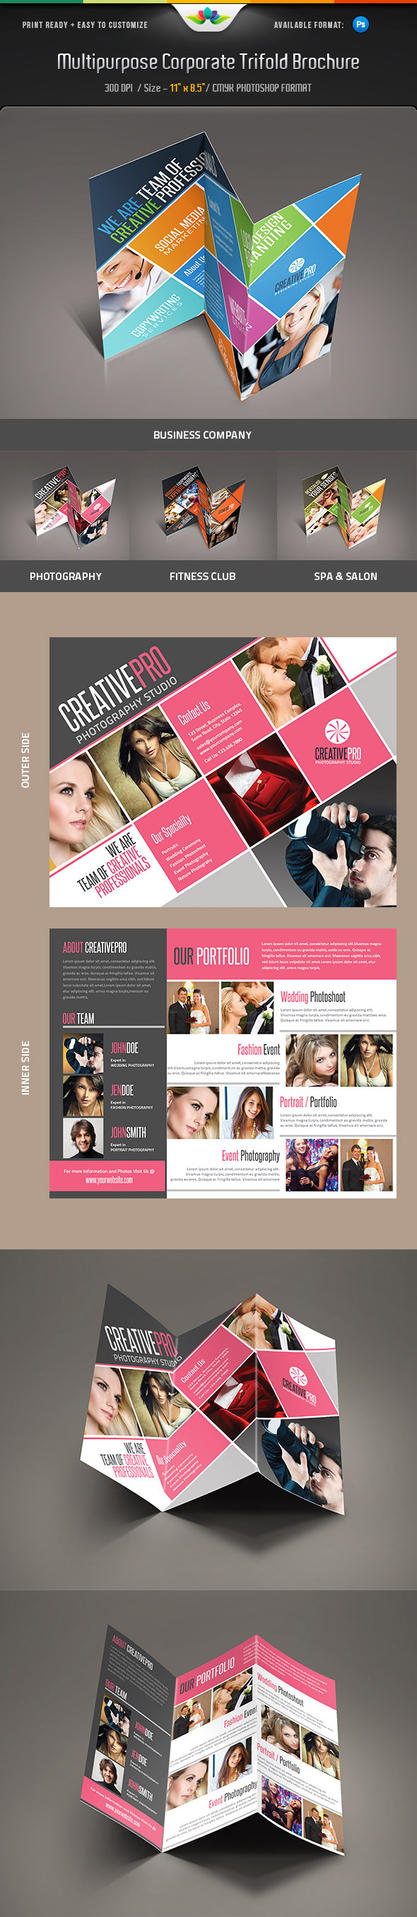 Multipurpose Corporate Trifold Brochure by Saptarang